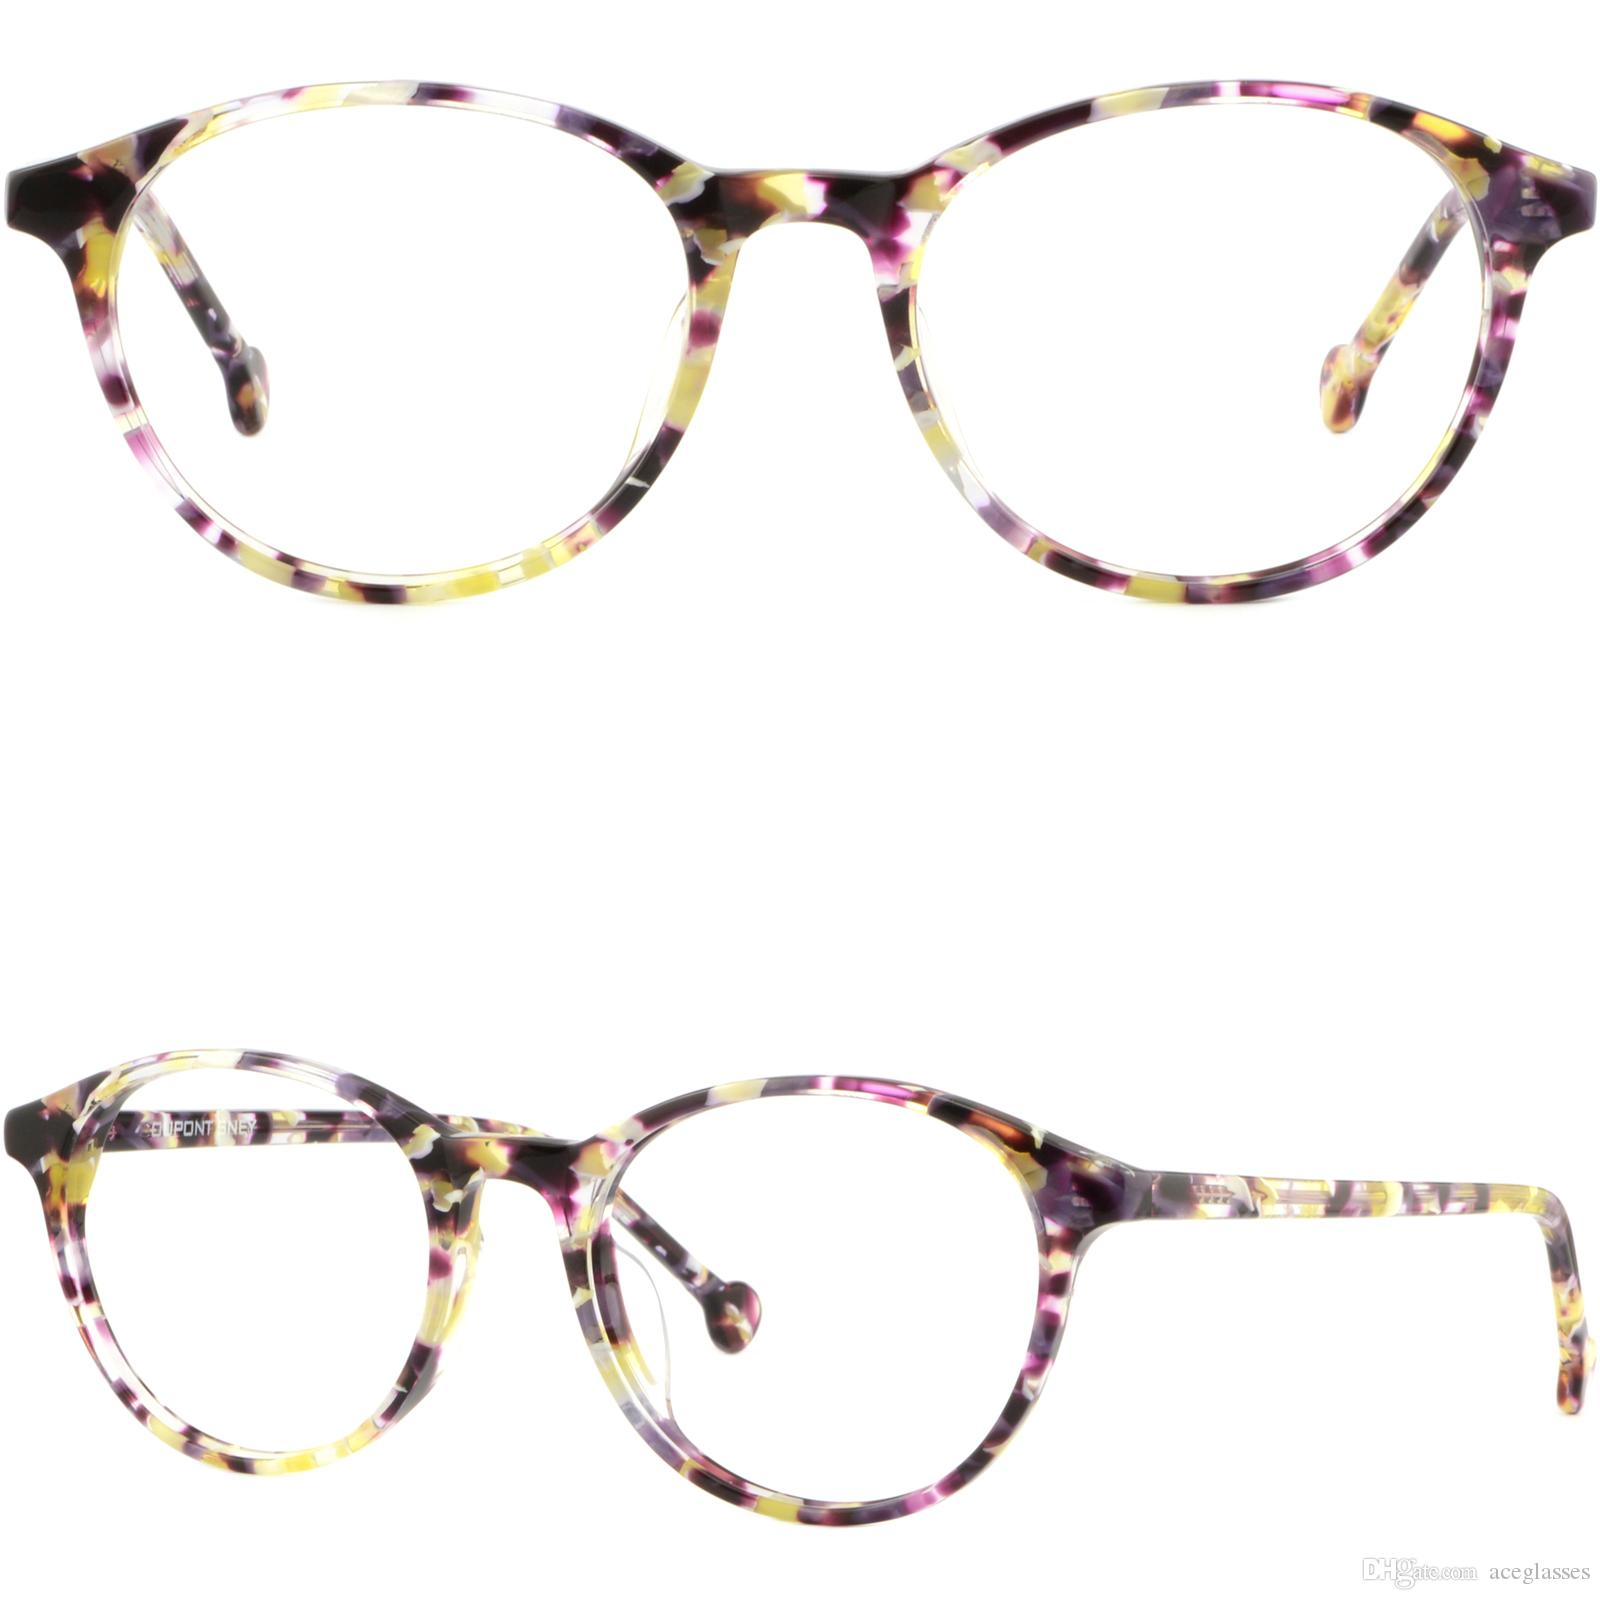 b1a1a1a86d2 Light Womens Plastic Frames Round Thin Acetate Glasses Yellow Purple  Brillengestell Fassung Damenbrille Rund Brillengestell Eyeglass Frames  Wholesale How To ...